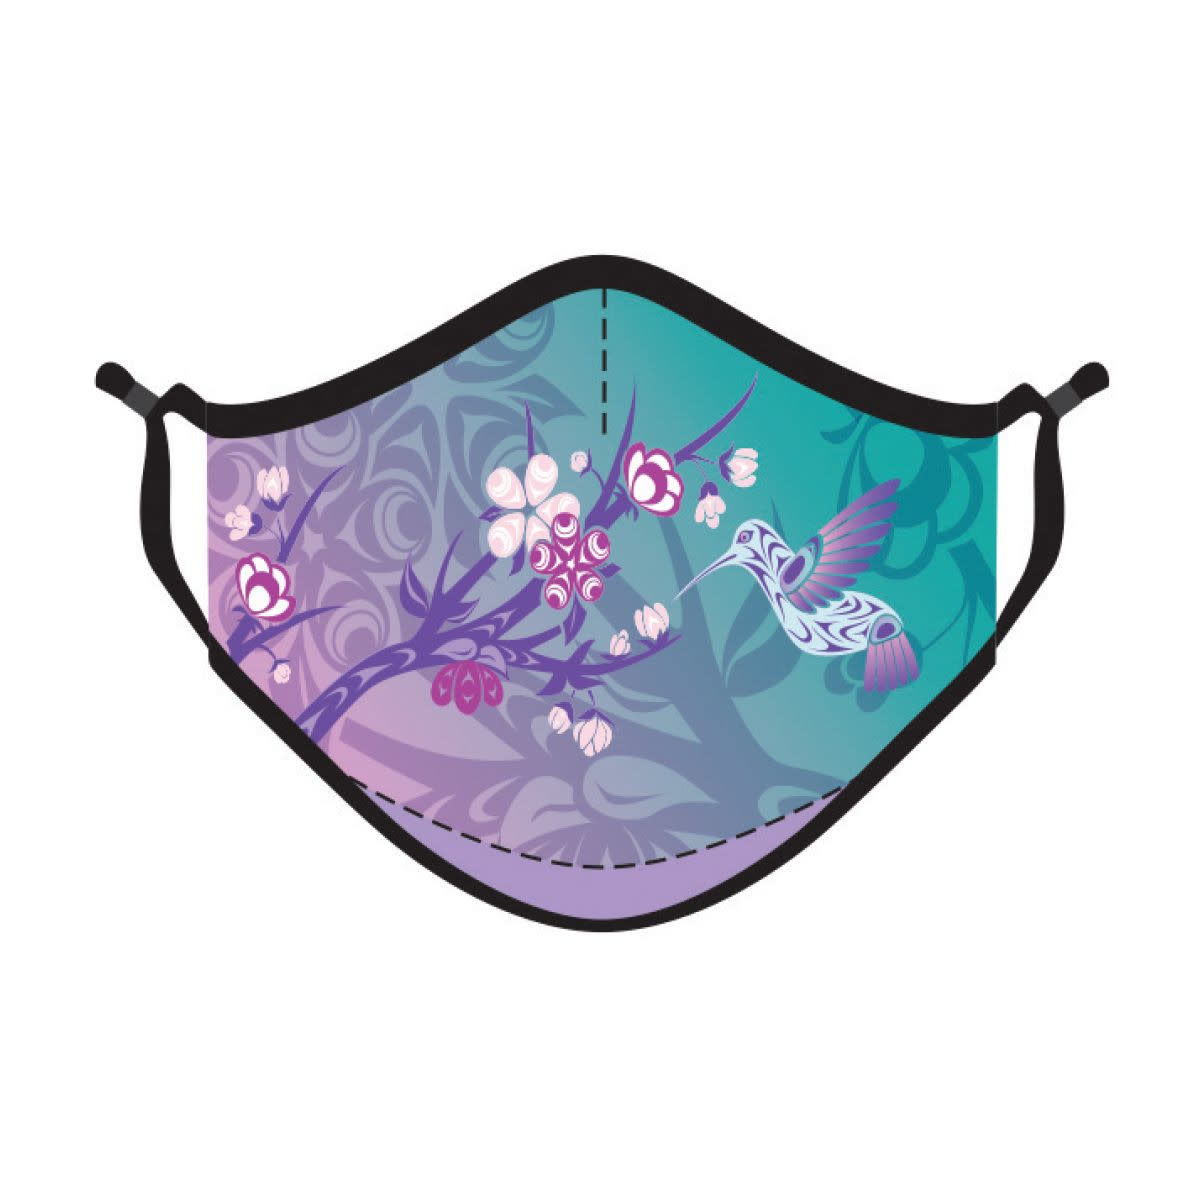 Reusable 4 ply  Face Mask- Hummingbird & Blossoms by Simone Diamond-1